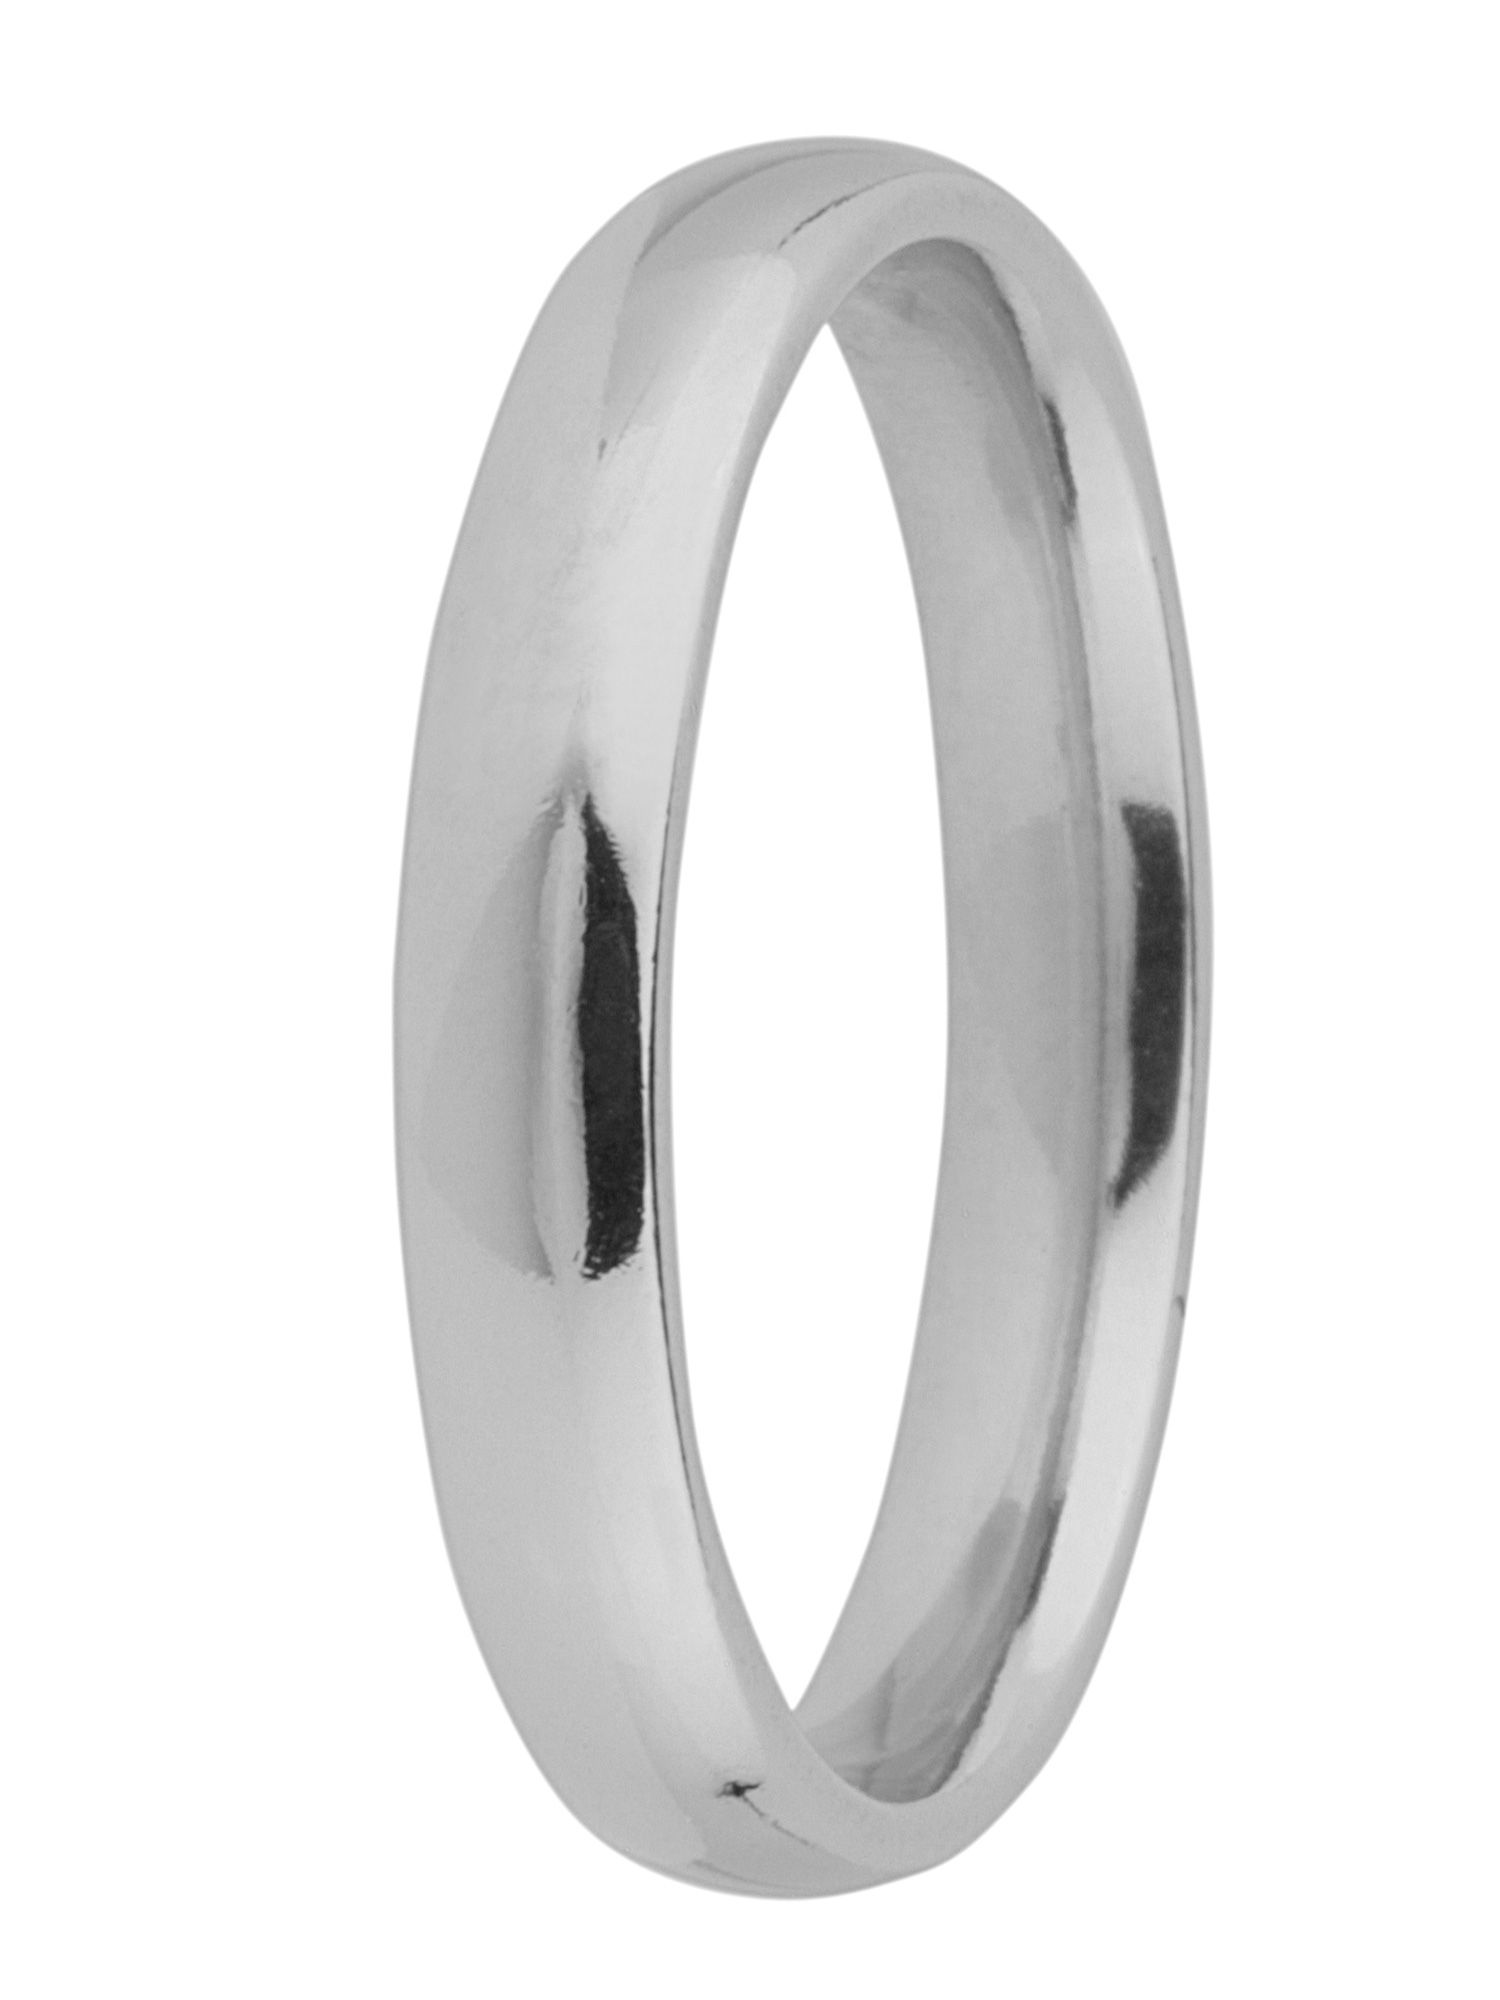 Brides platinum heavy court 3mm wedding ring - Silver